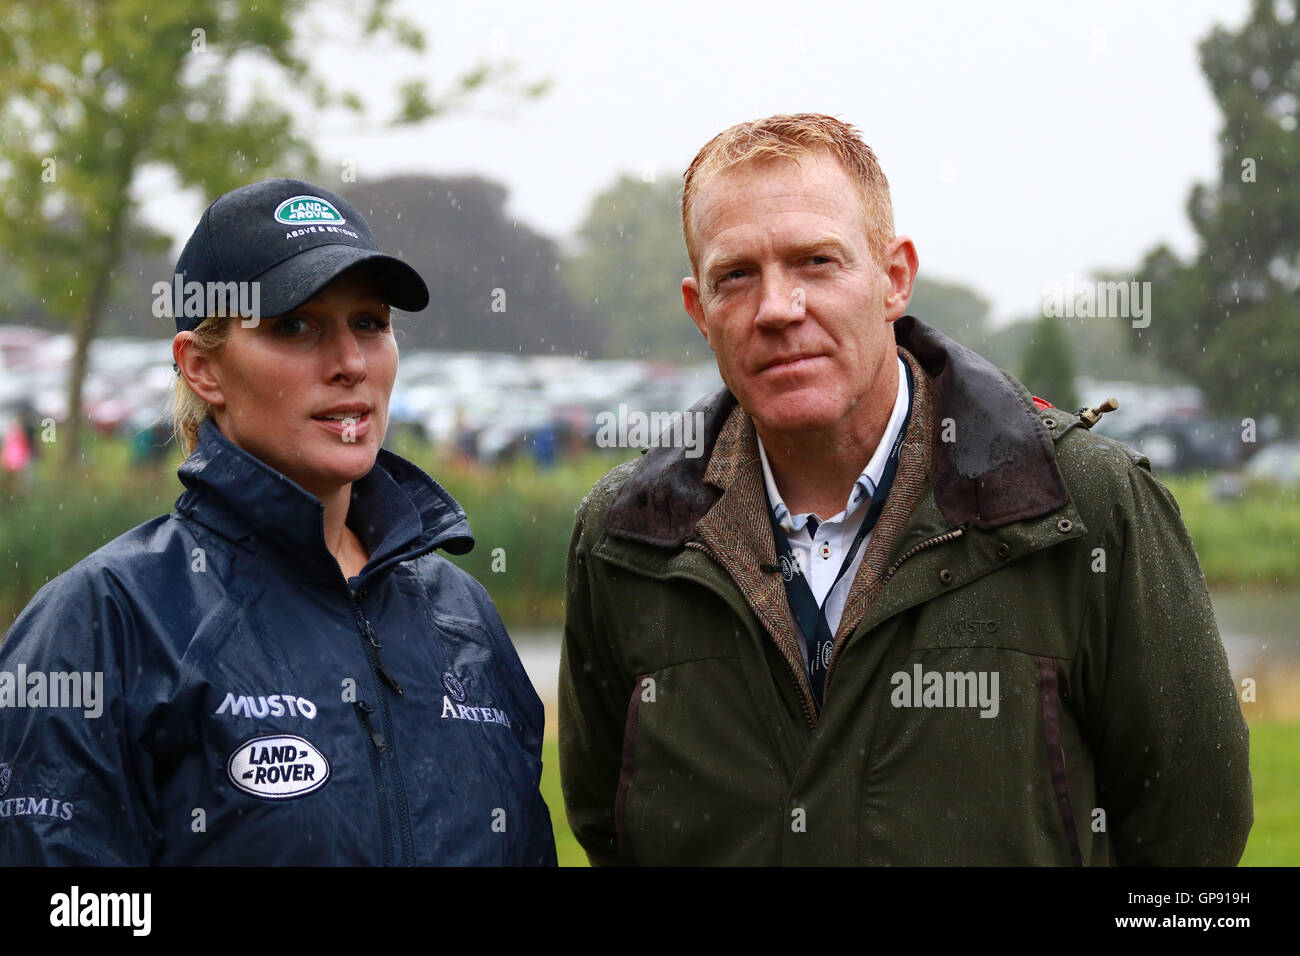 Land Rover Burghley Horse Trials . Stamford, Lincolnshire, UK. 03rd Sep, 2016. Zara Tindall and Countryfile presenter - Stock Image